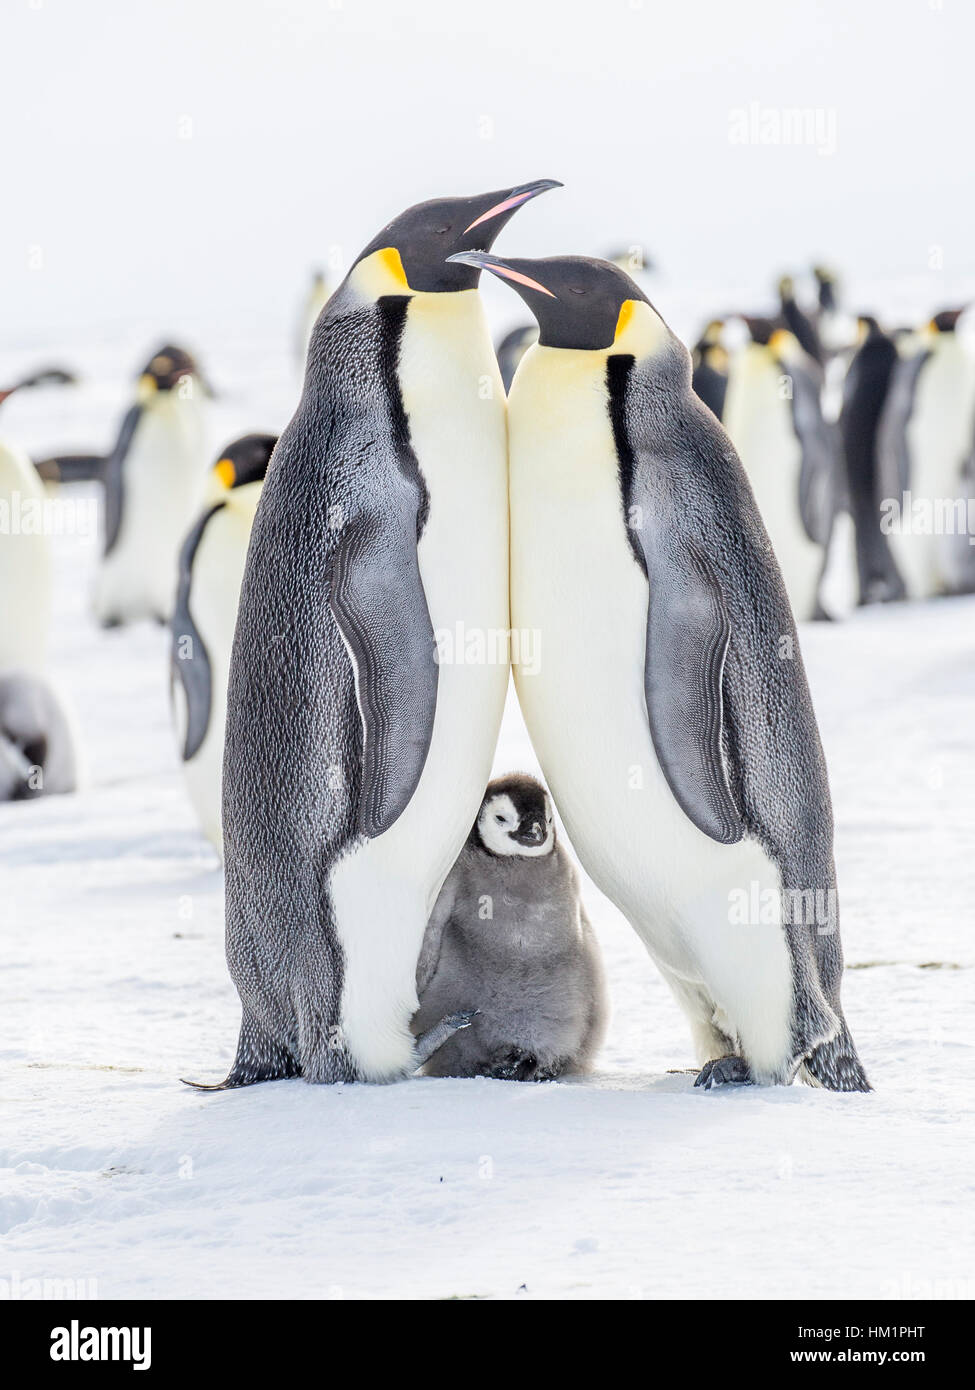 Gould Bay, Weddell Sea, Antarctica. 18th Nov, 2016. The parents of an Emperor Penguin chick stand together in a - Stock Image